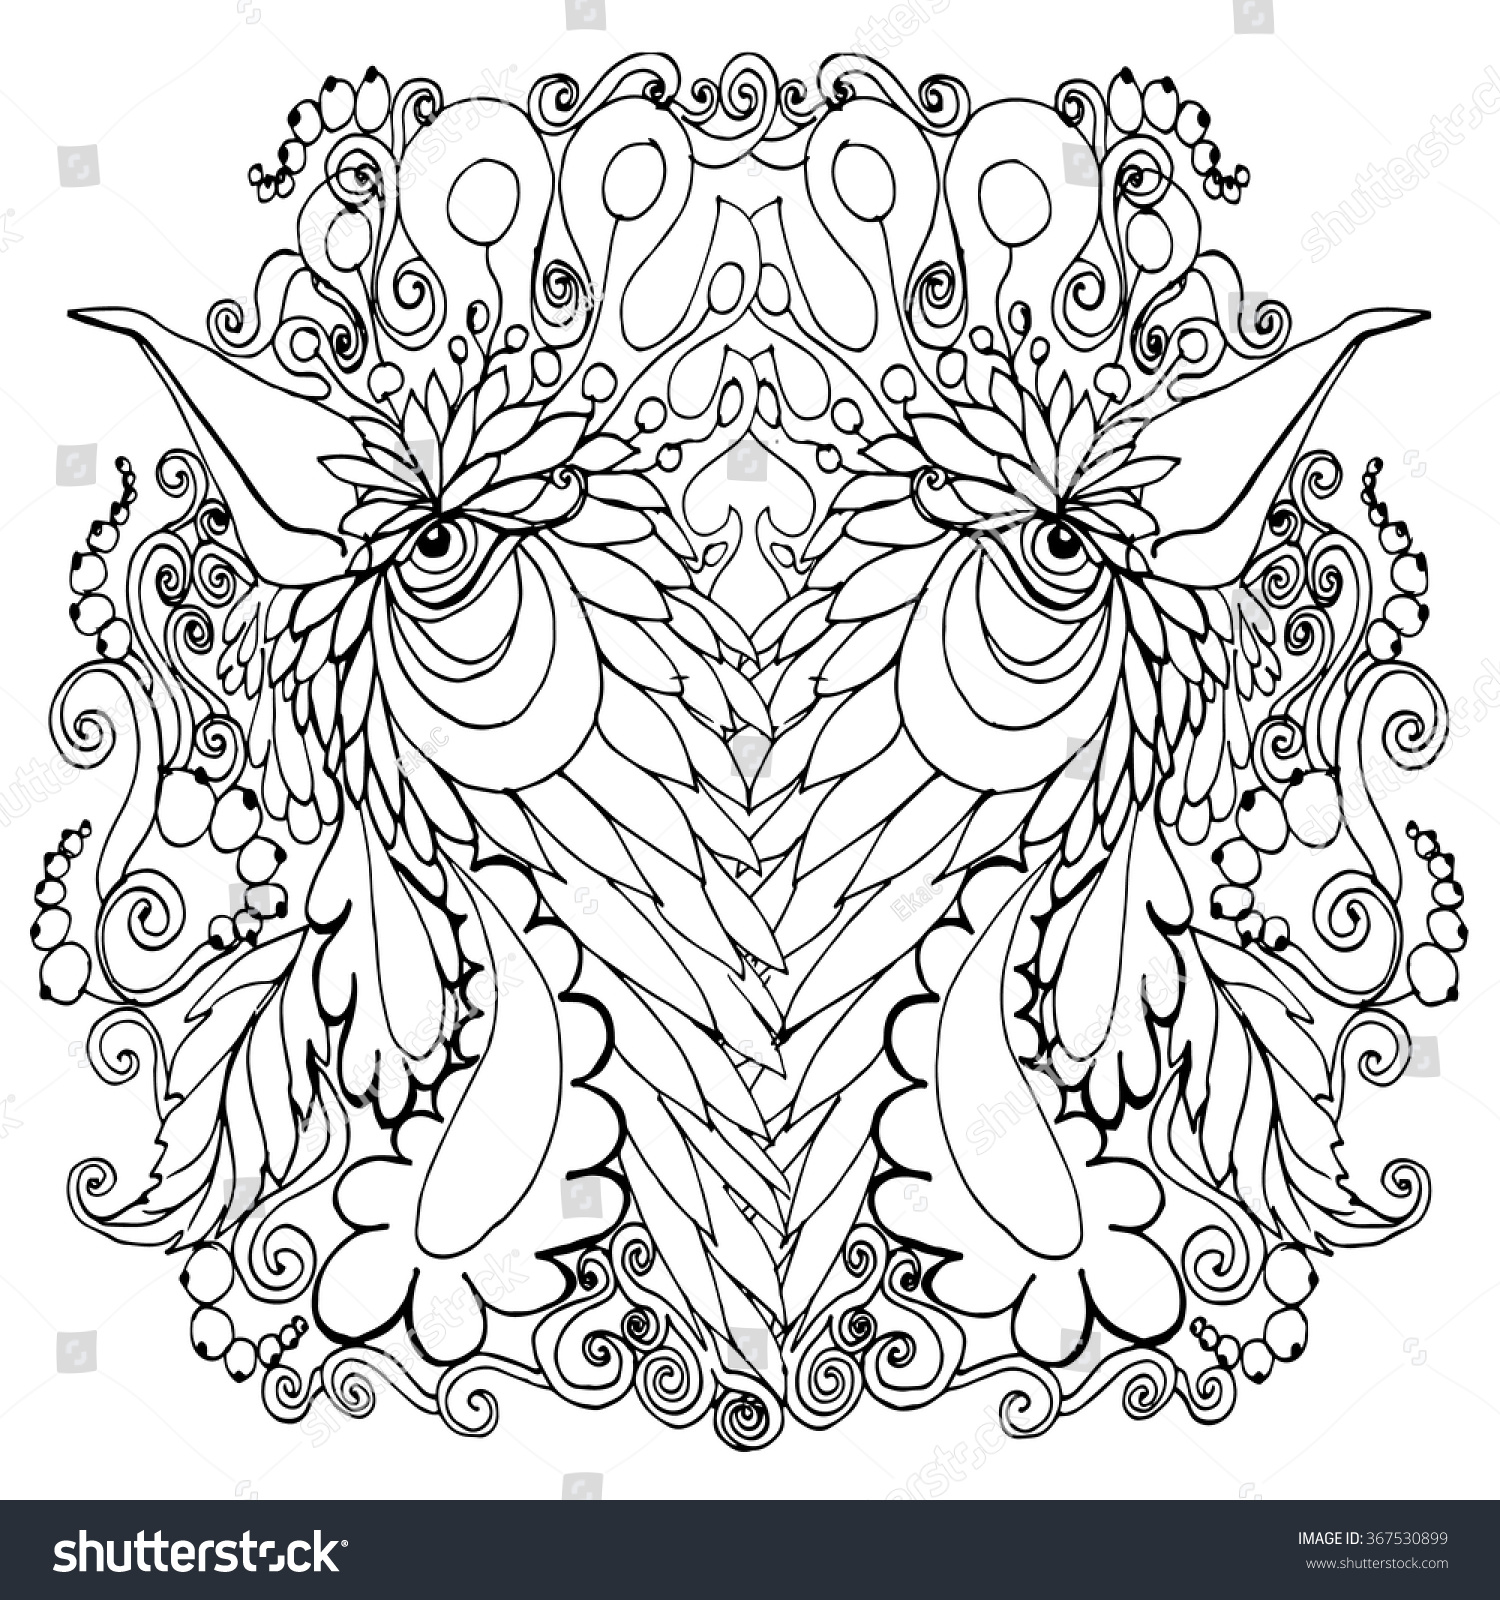 abstract rooster coloring page outlined ink stock vector 367530899